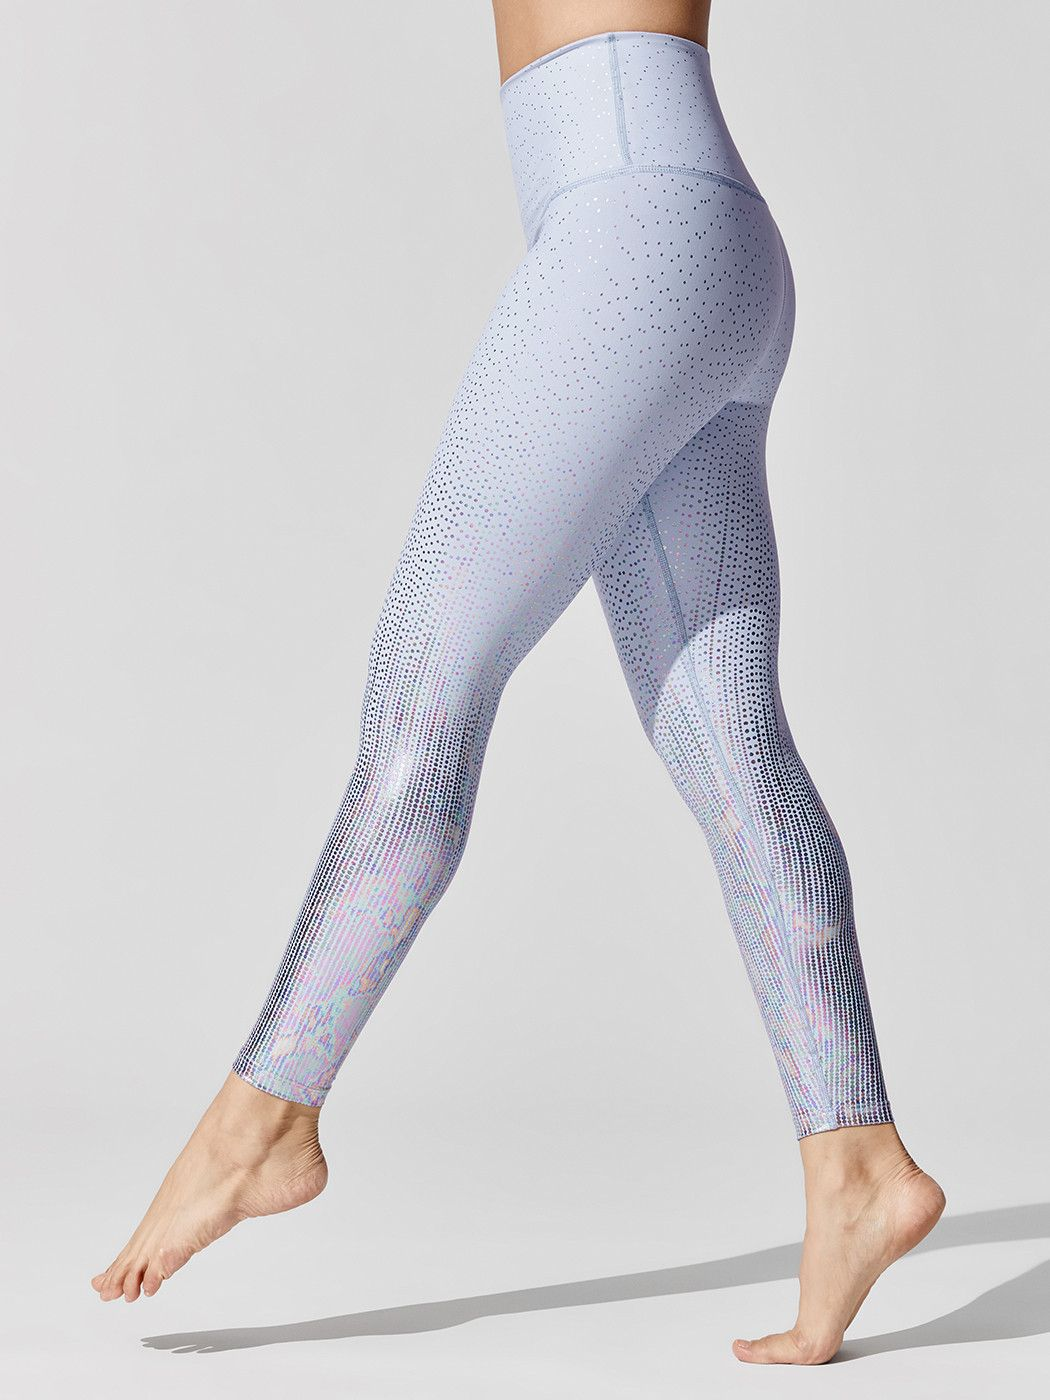 Drip Dot @carbon38 #yoga #fitness #workout #activewear #leggings